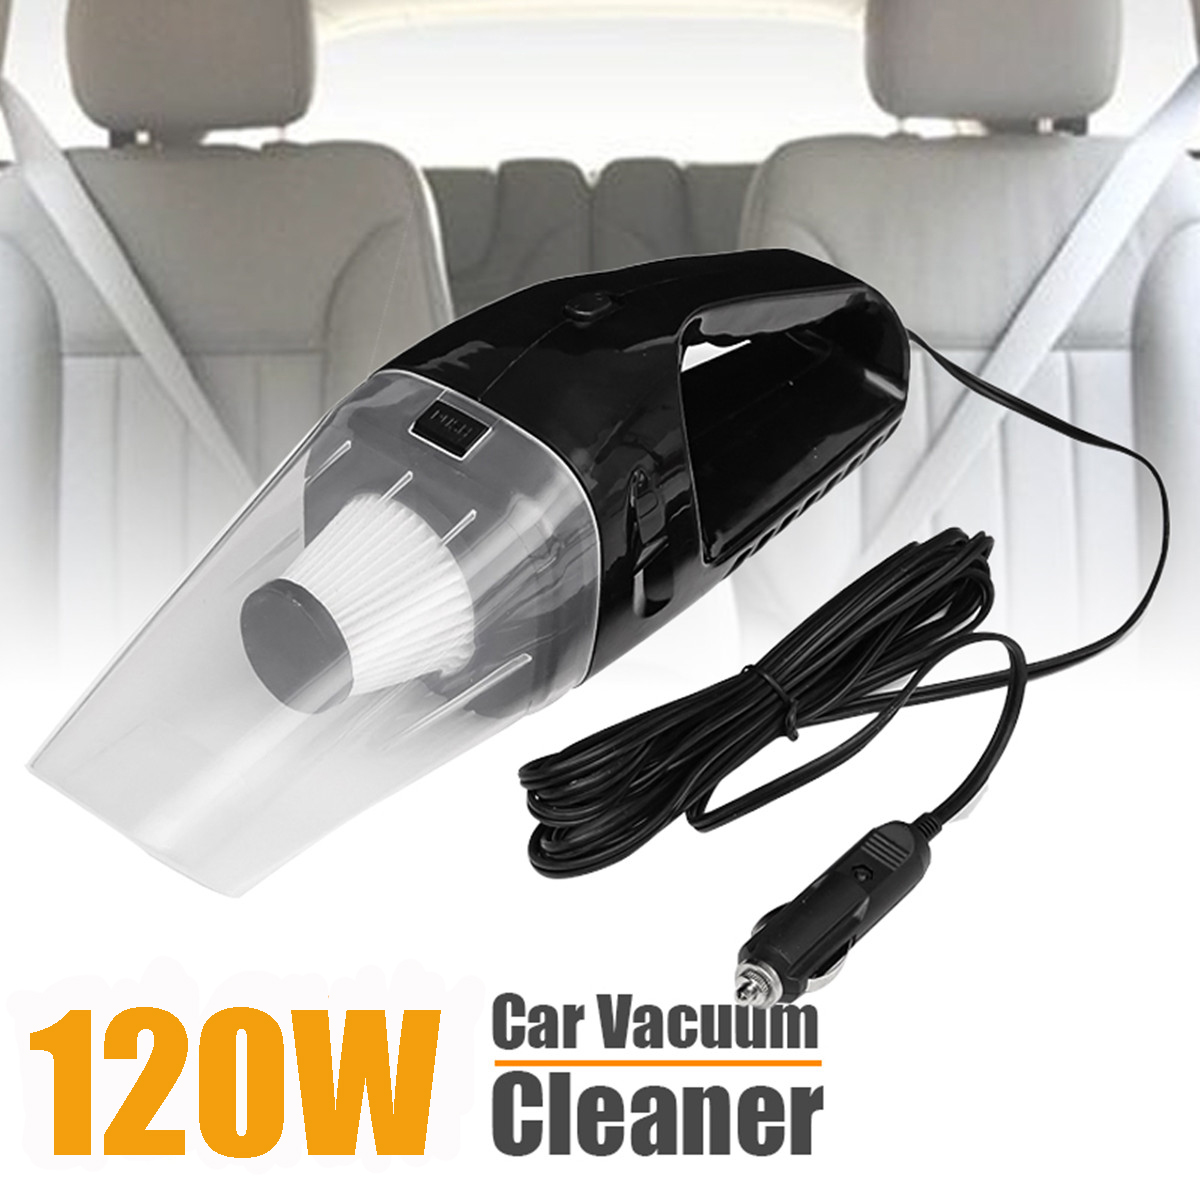 Car Vacuum Cleaner 120W 12V Portable Handheld Mini Vacuum Cleaner Super Suction Auto Wet Dry Dual Use Duster 2018 car vacuum cleaner 90w 2800pa mini portable cordless handheld auto vacuum cleaner dust suction collector dry wet dual use